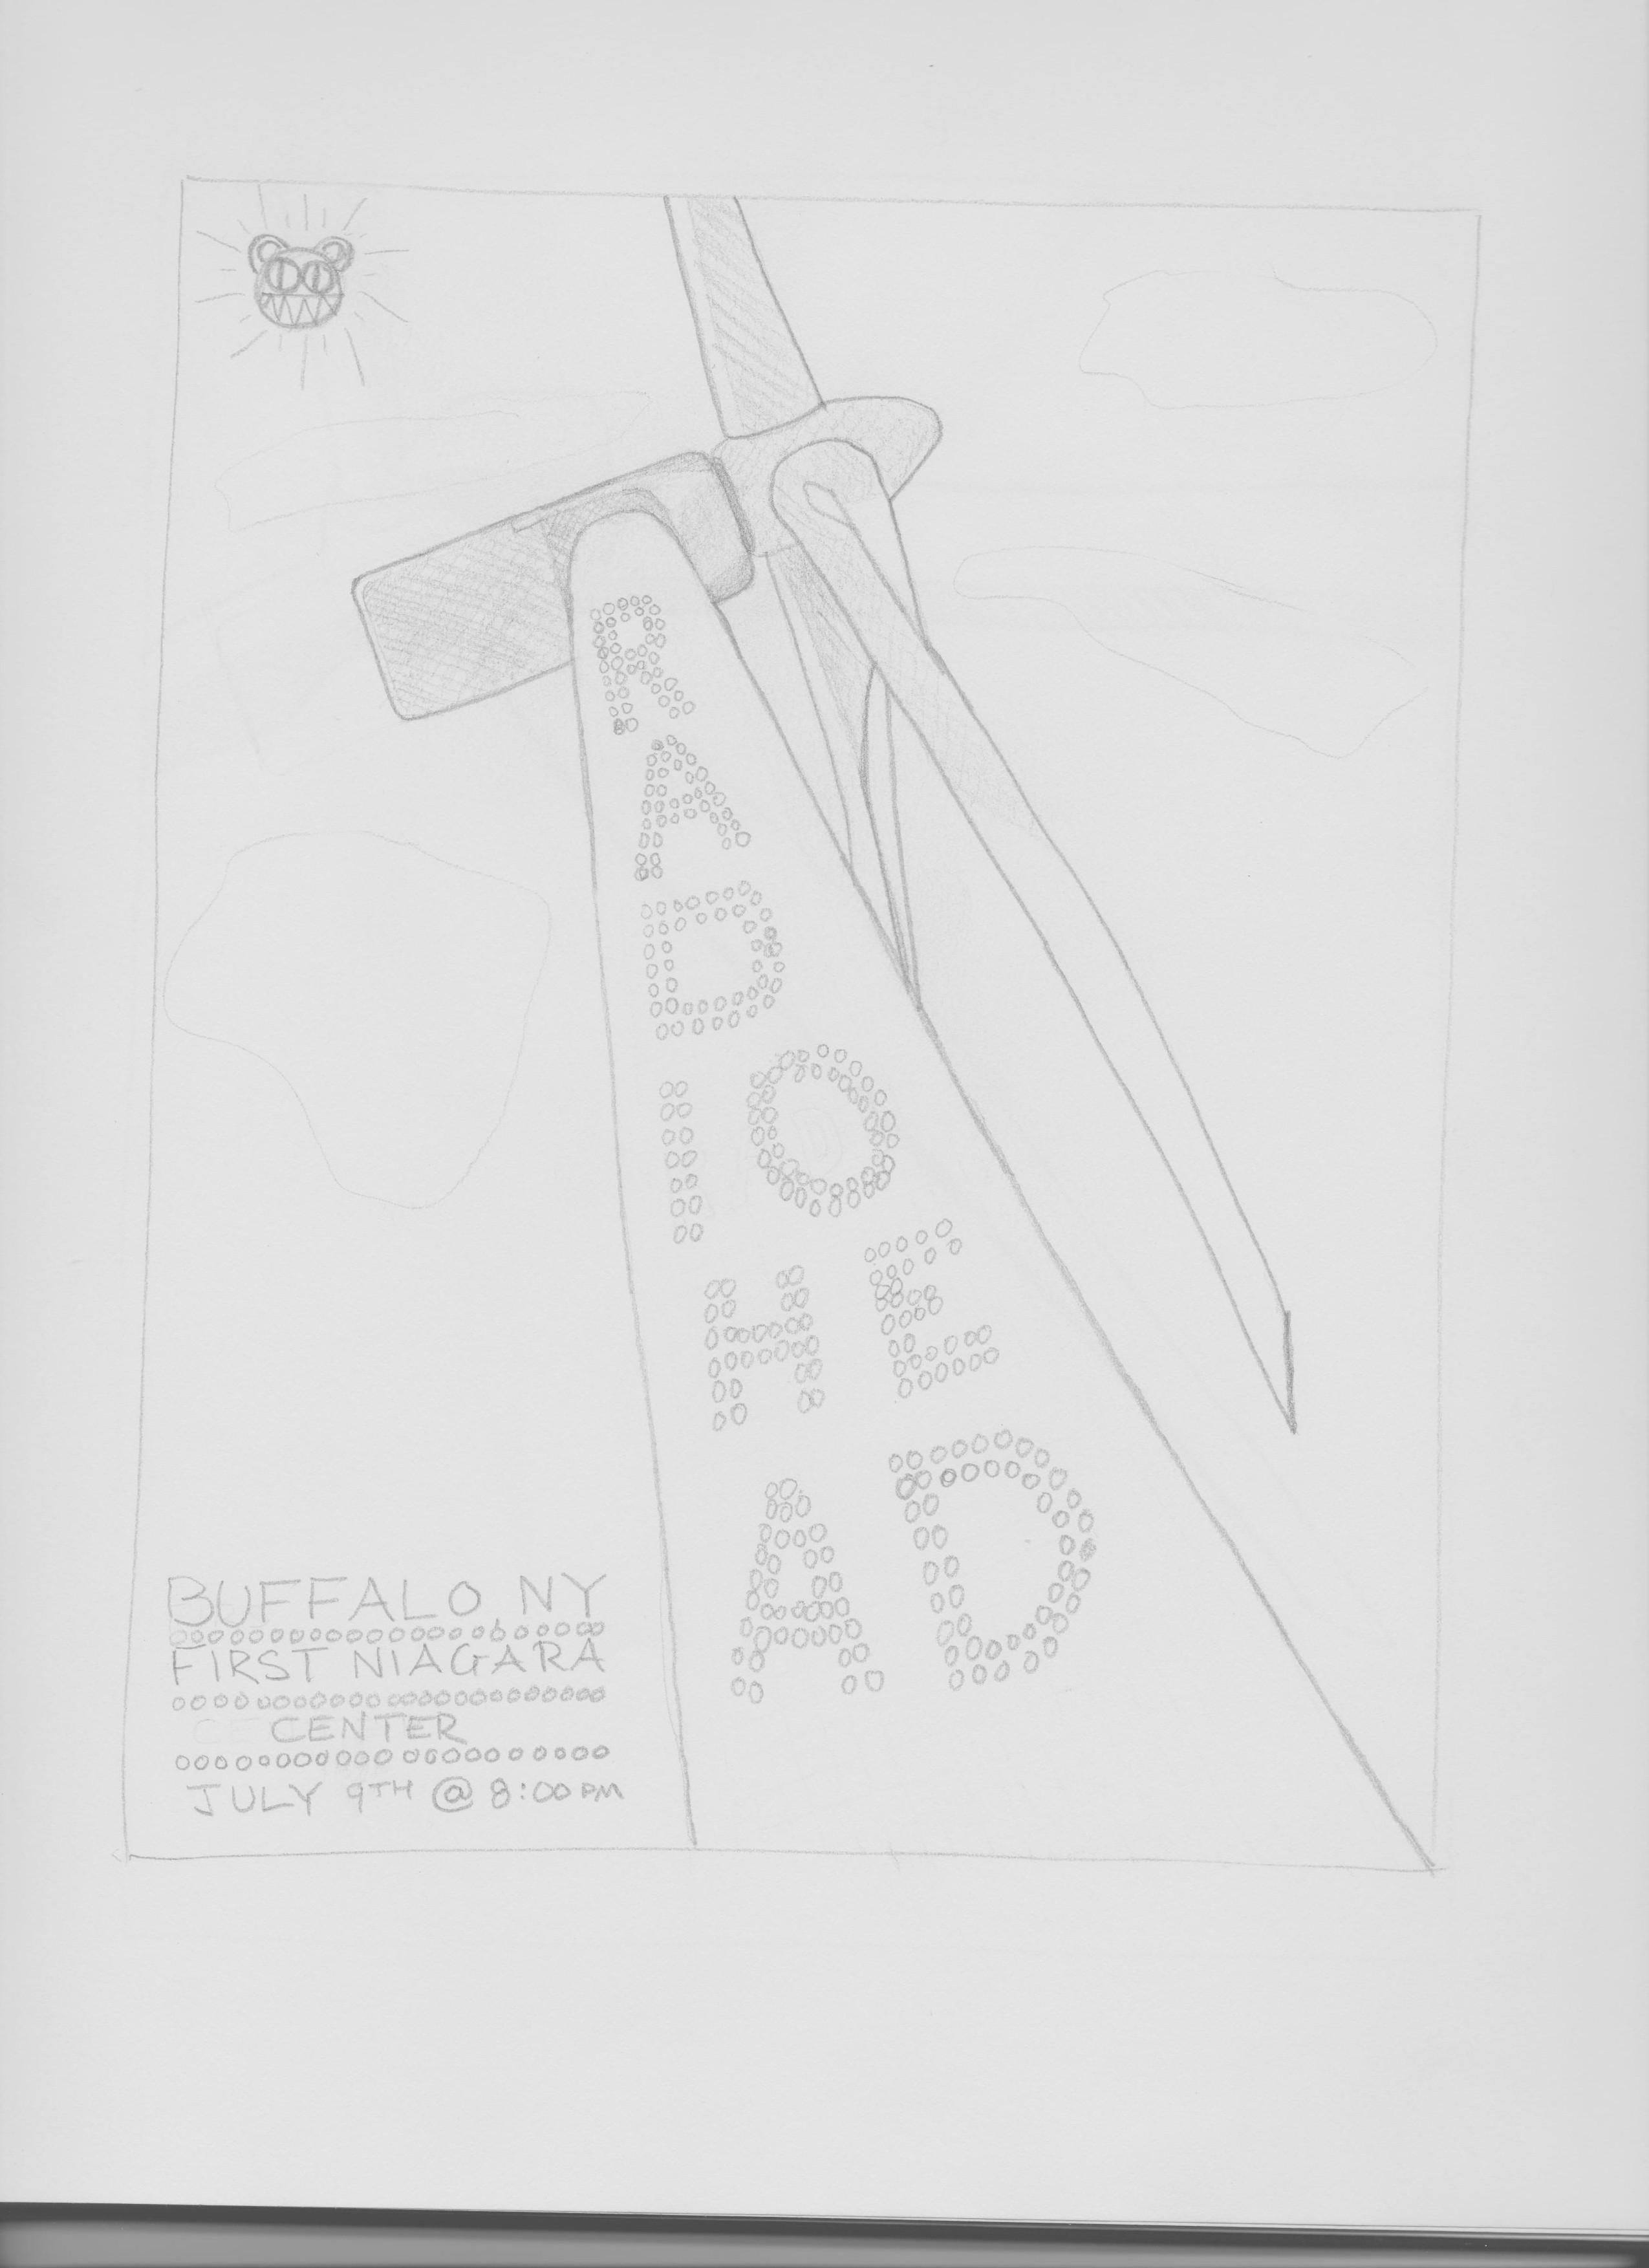 If Radiohead came to Buffalo... - image 5 - student project